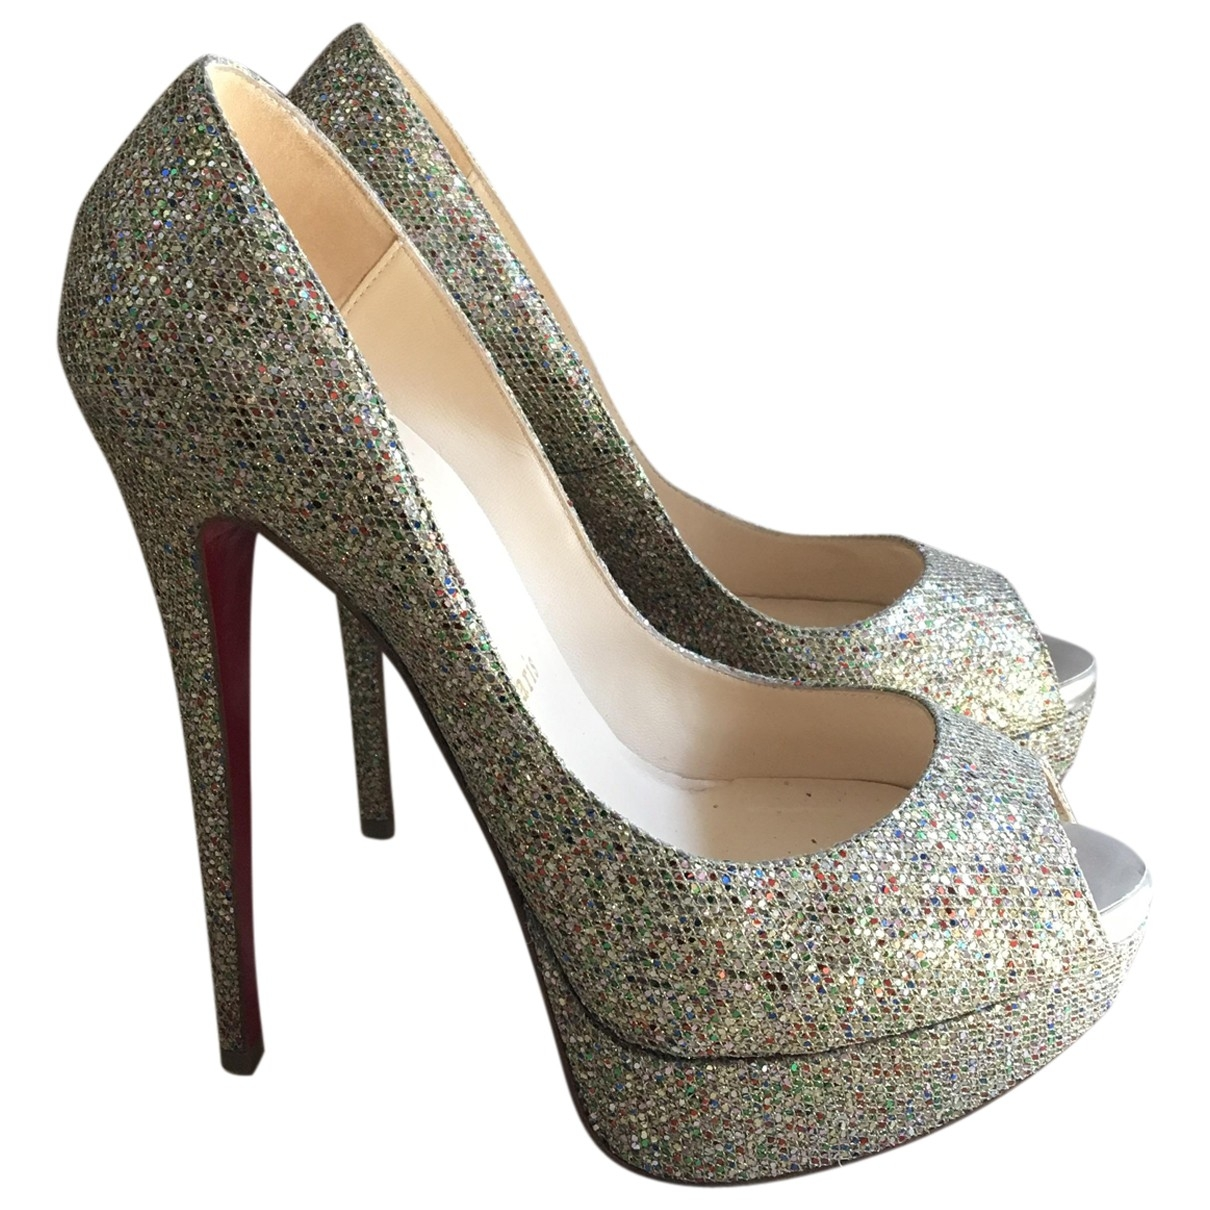 Christian Louboutin Lady Peep Gold Glitter Heels for Women 37.5 EU